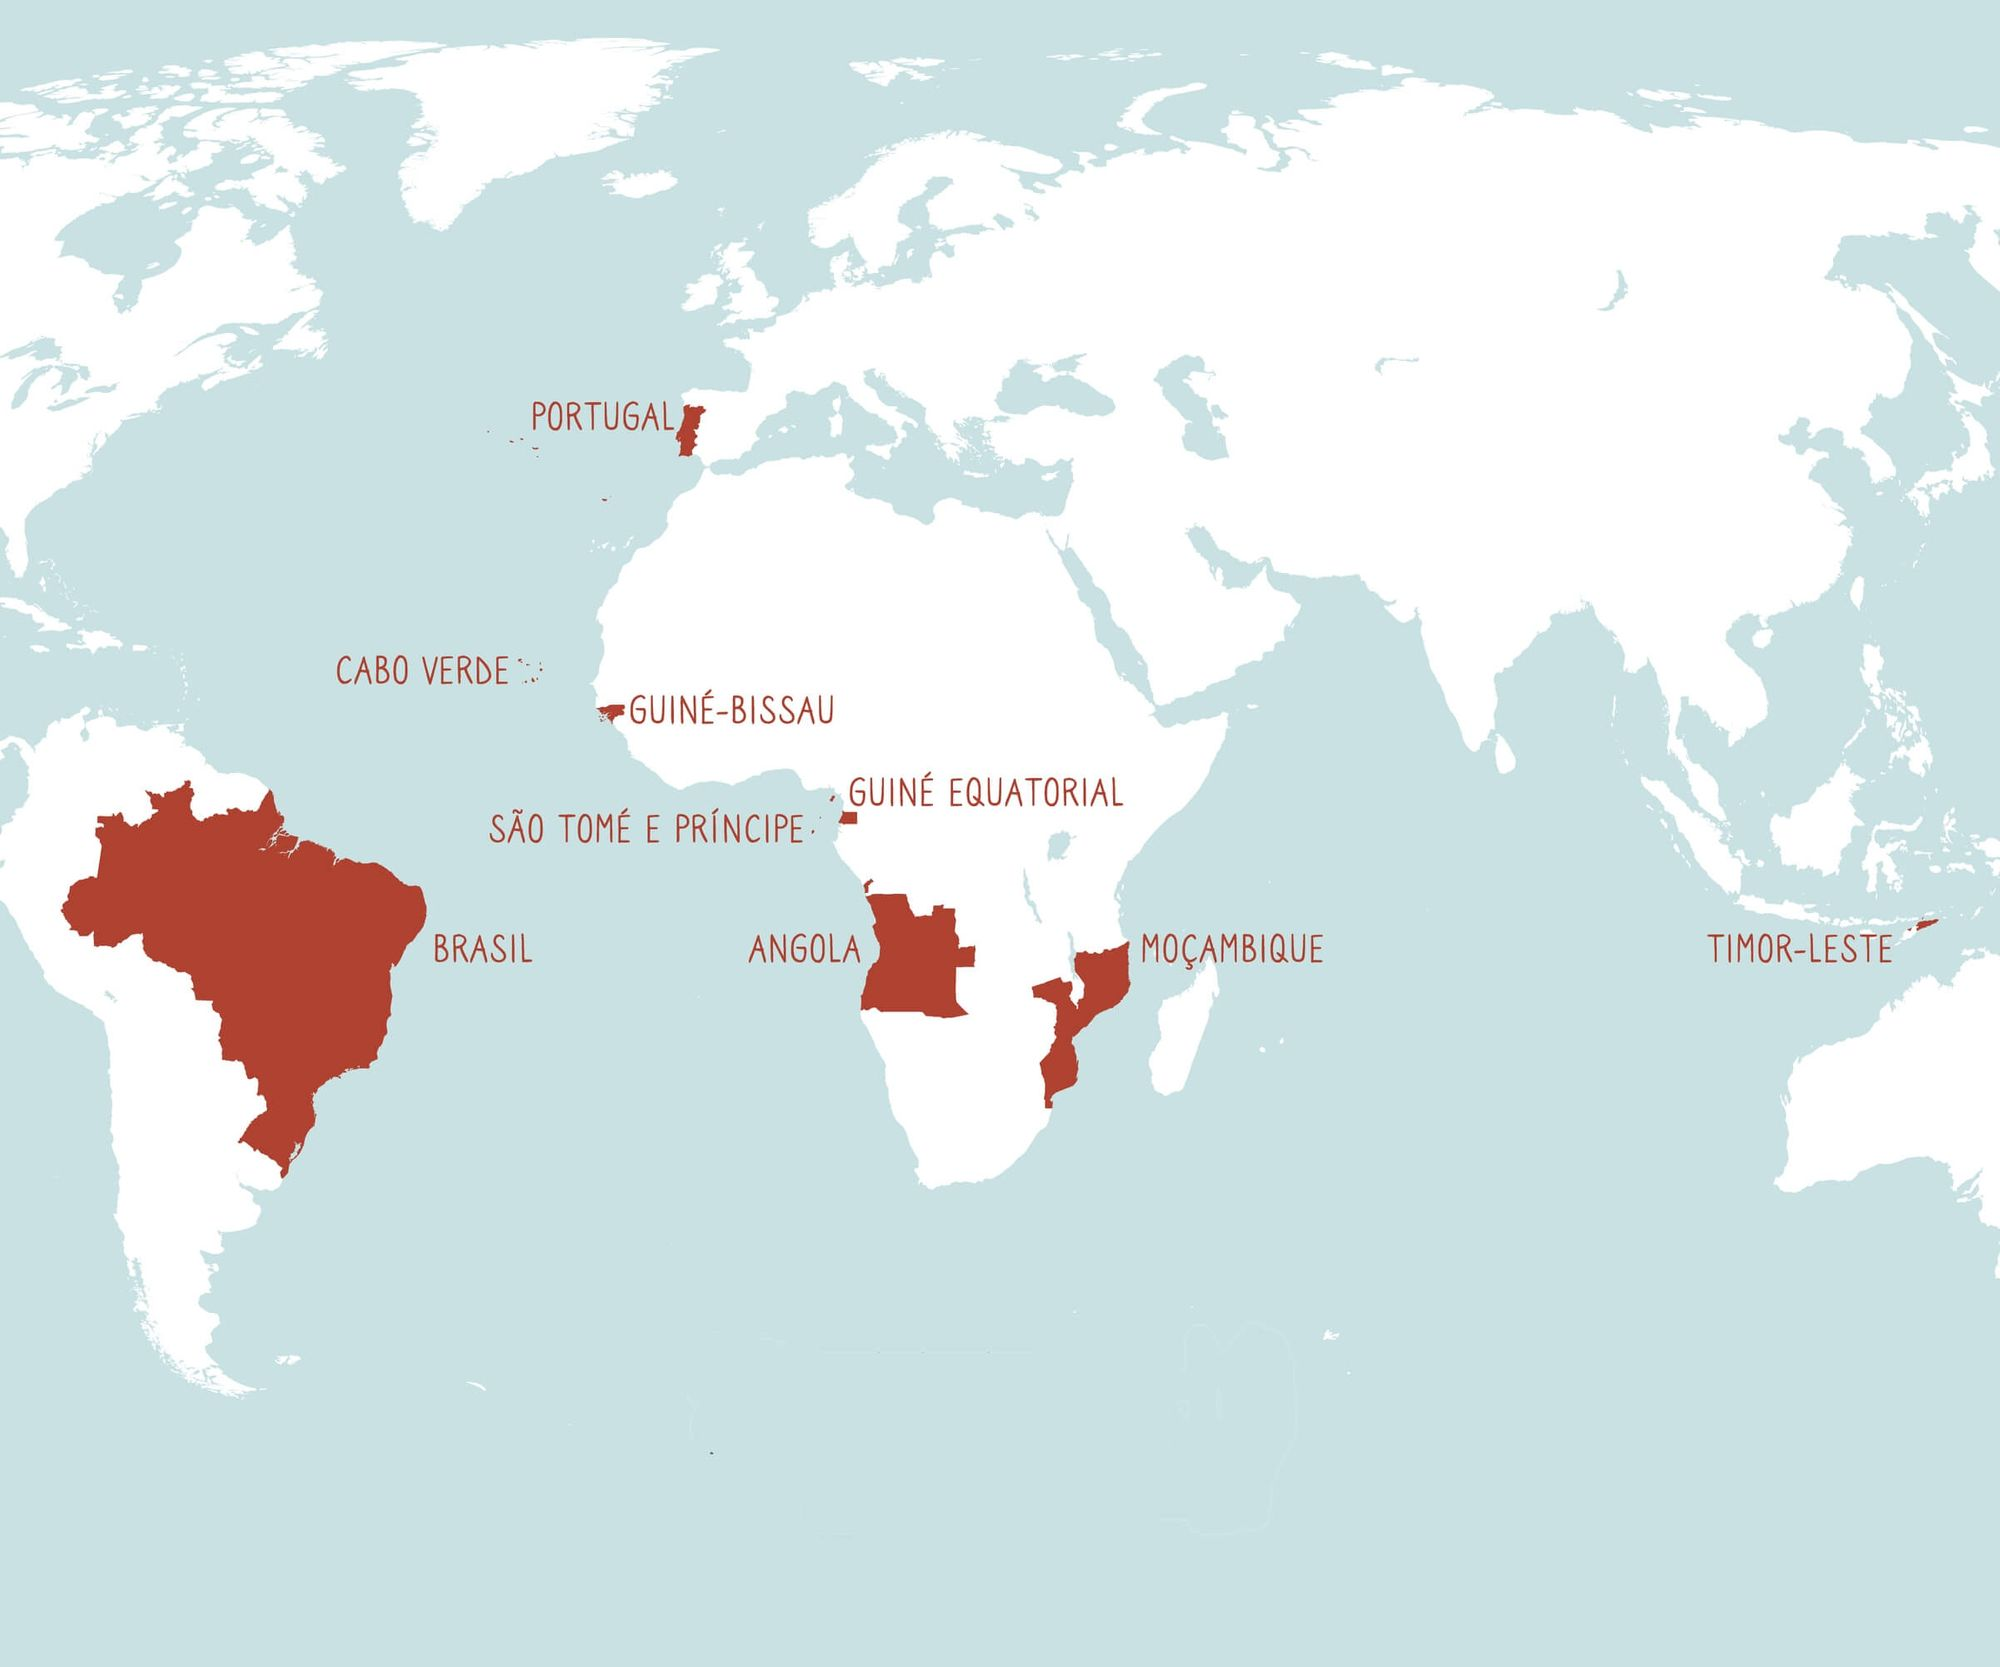 map of Portuguese speaking countries